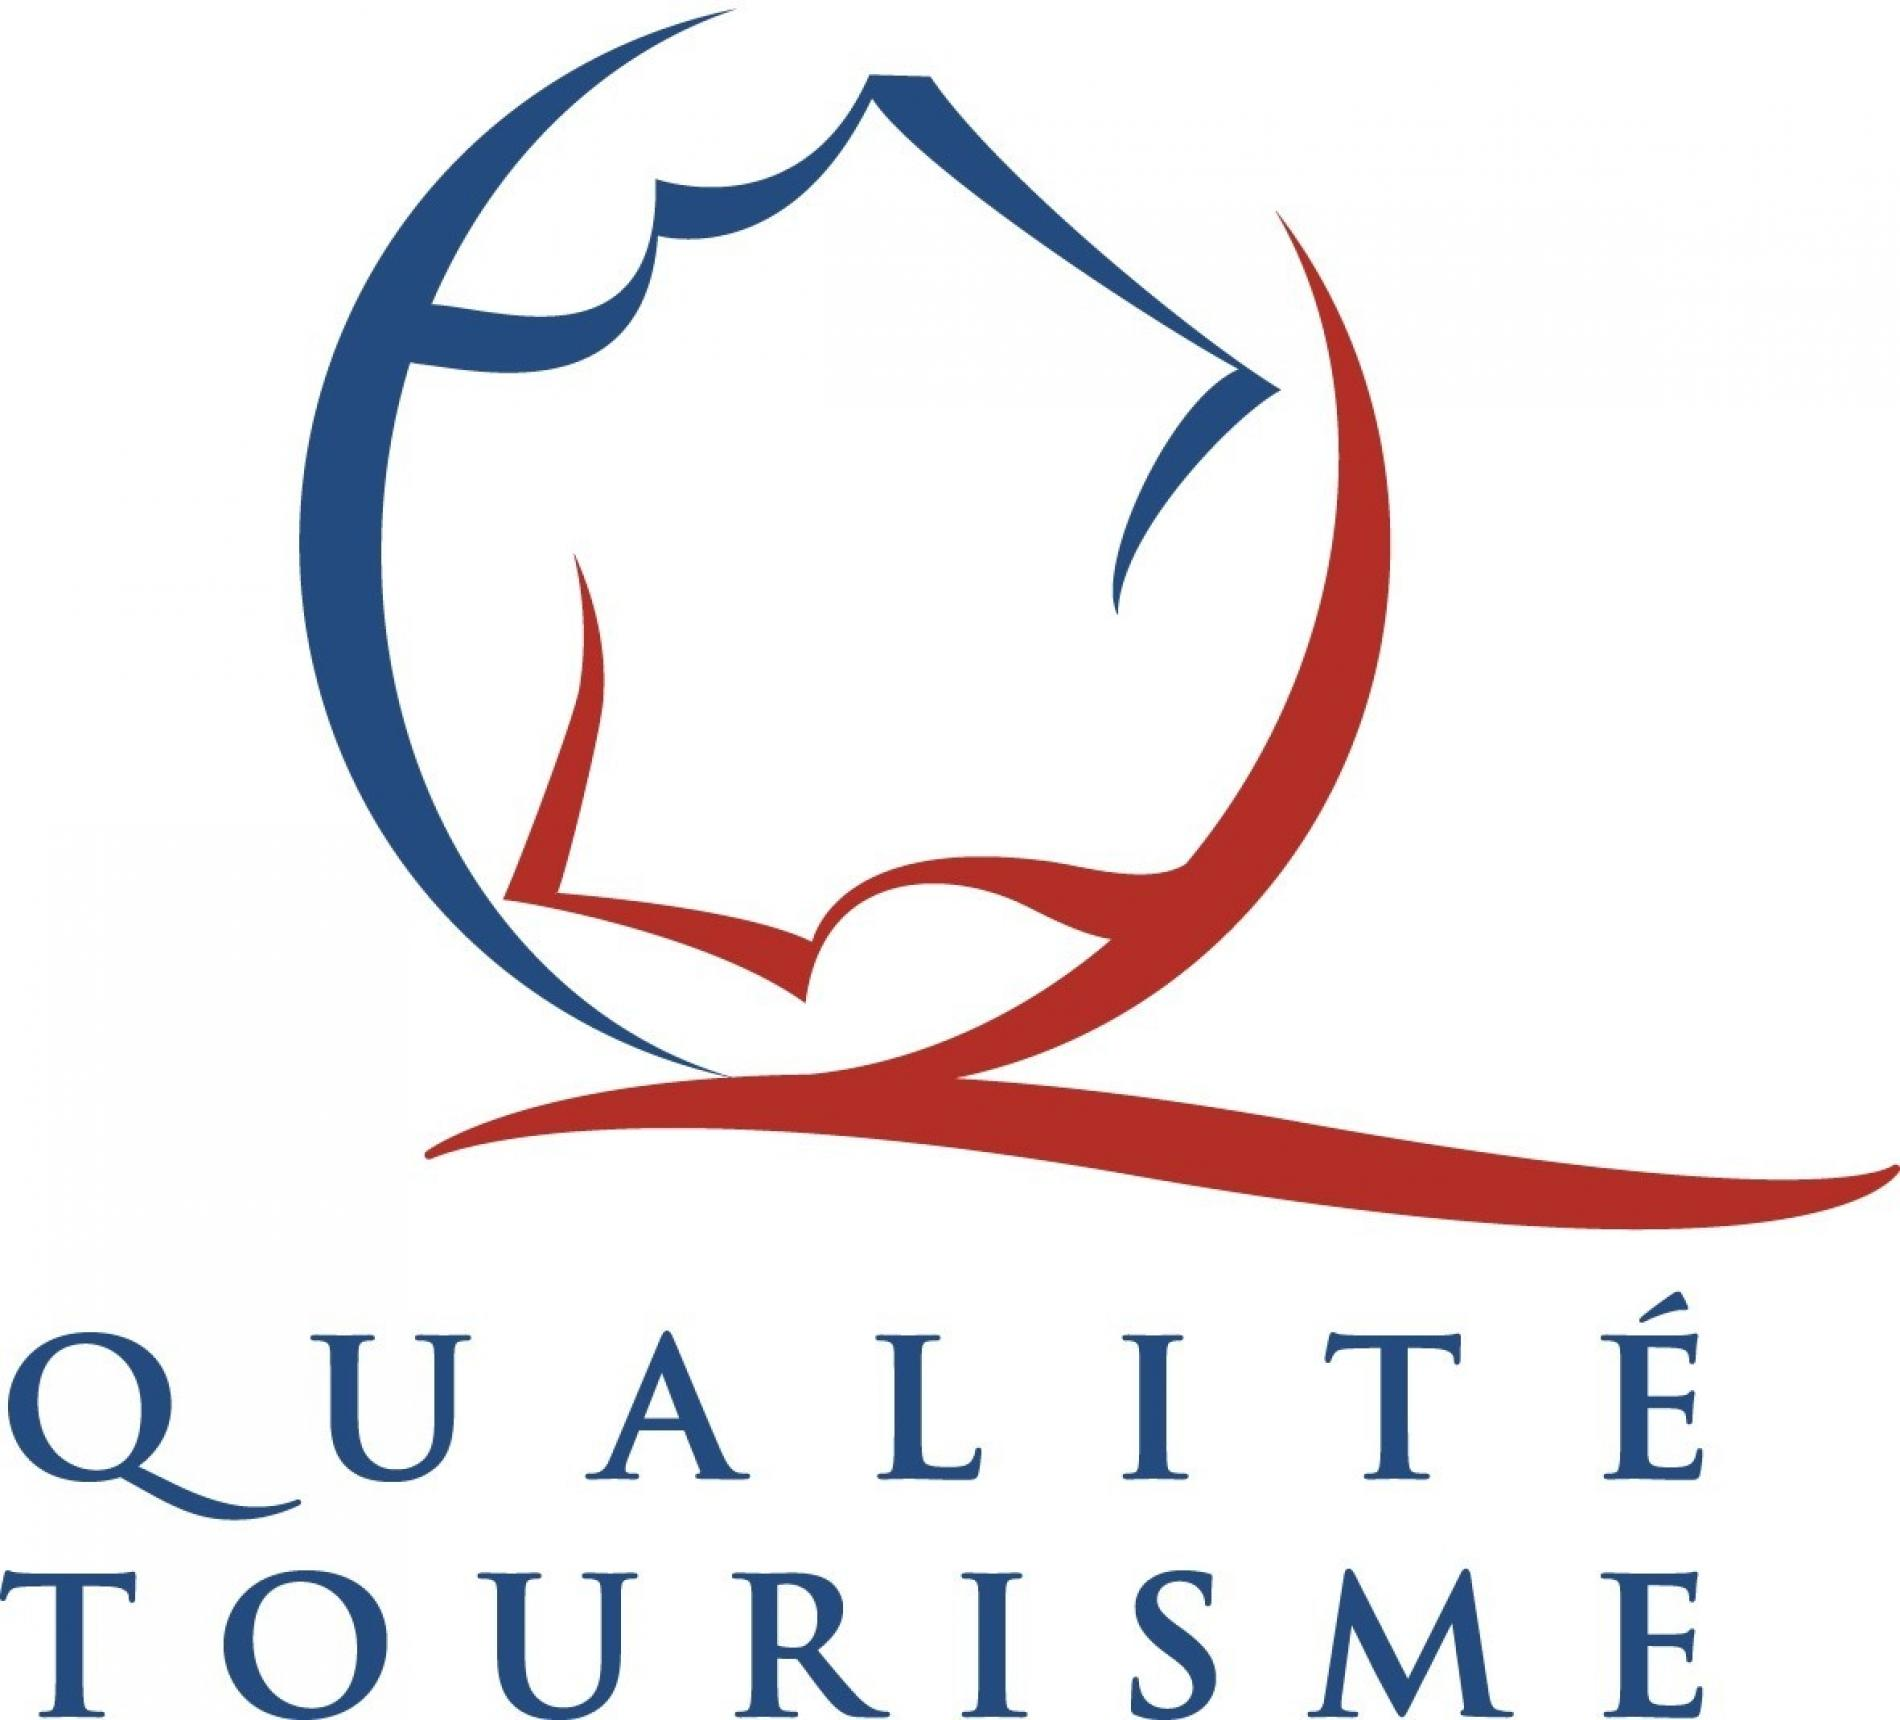 Hotel Qualité tourisme à Biscarrosse